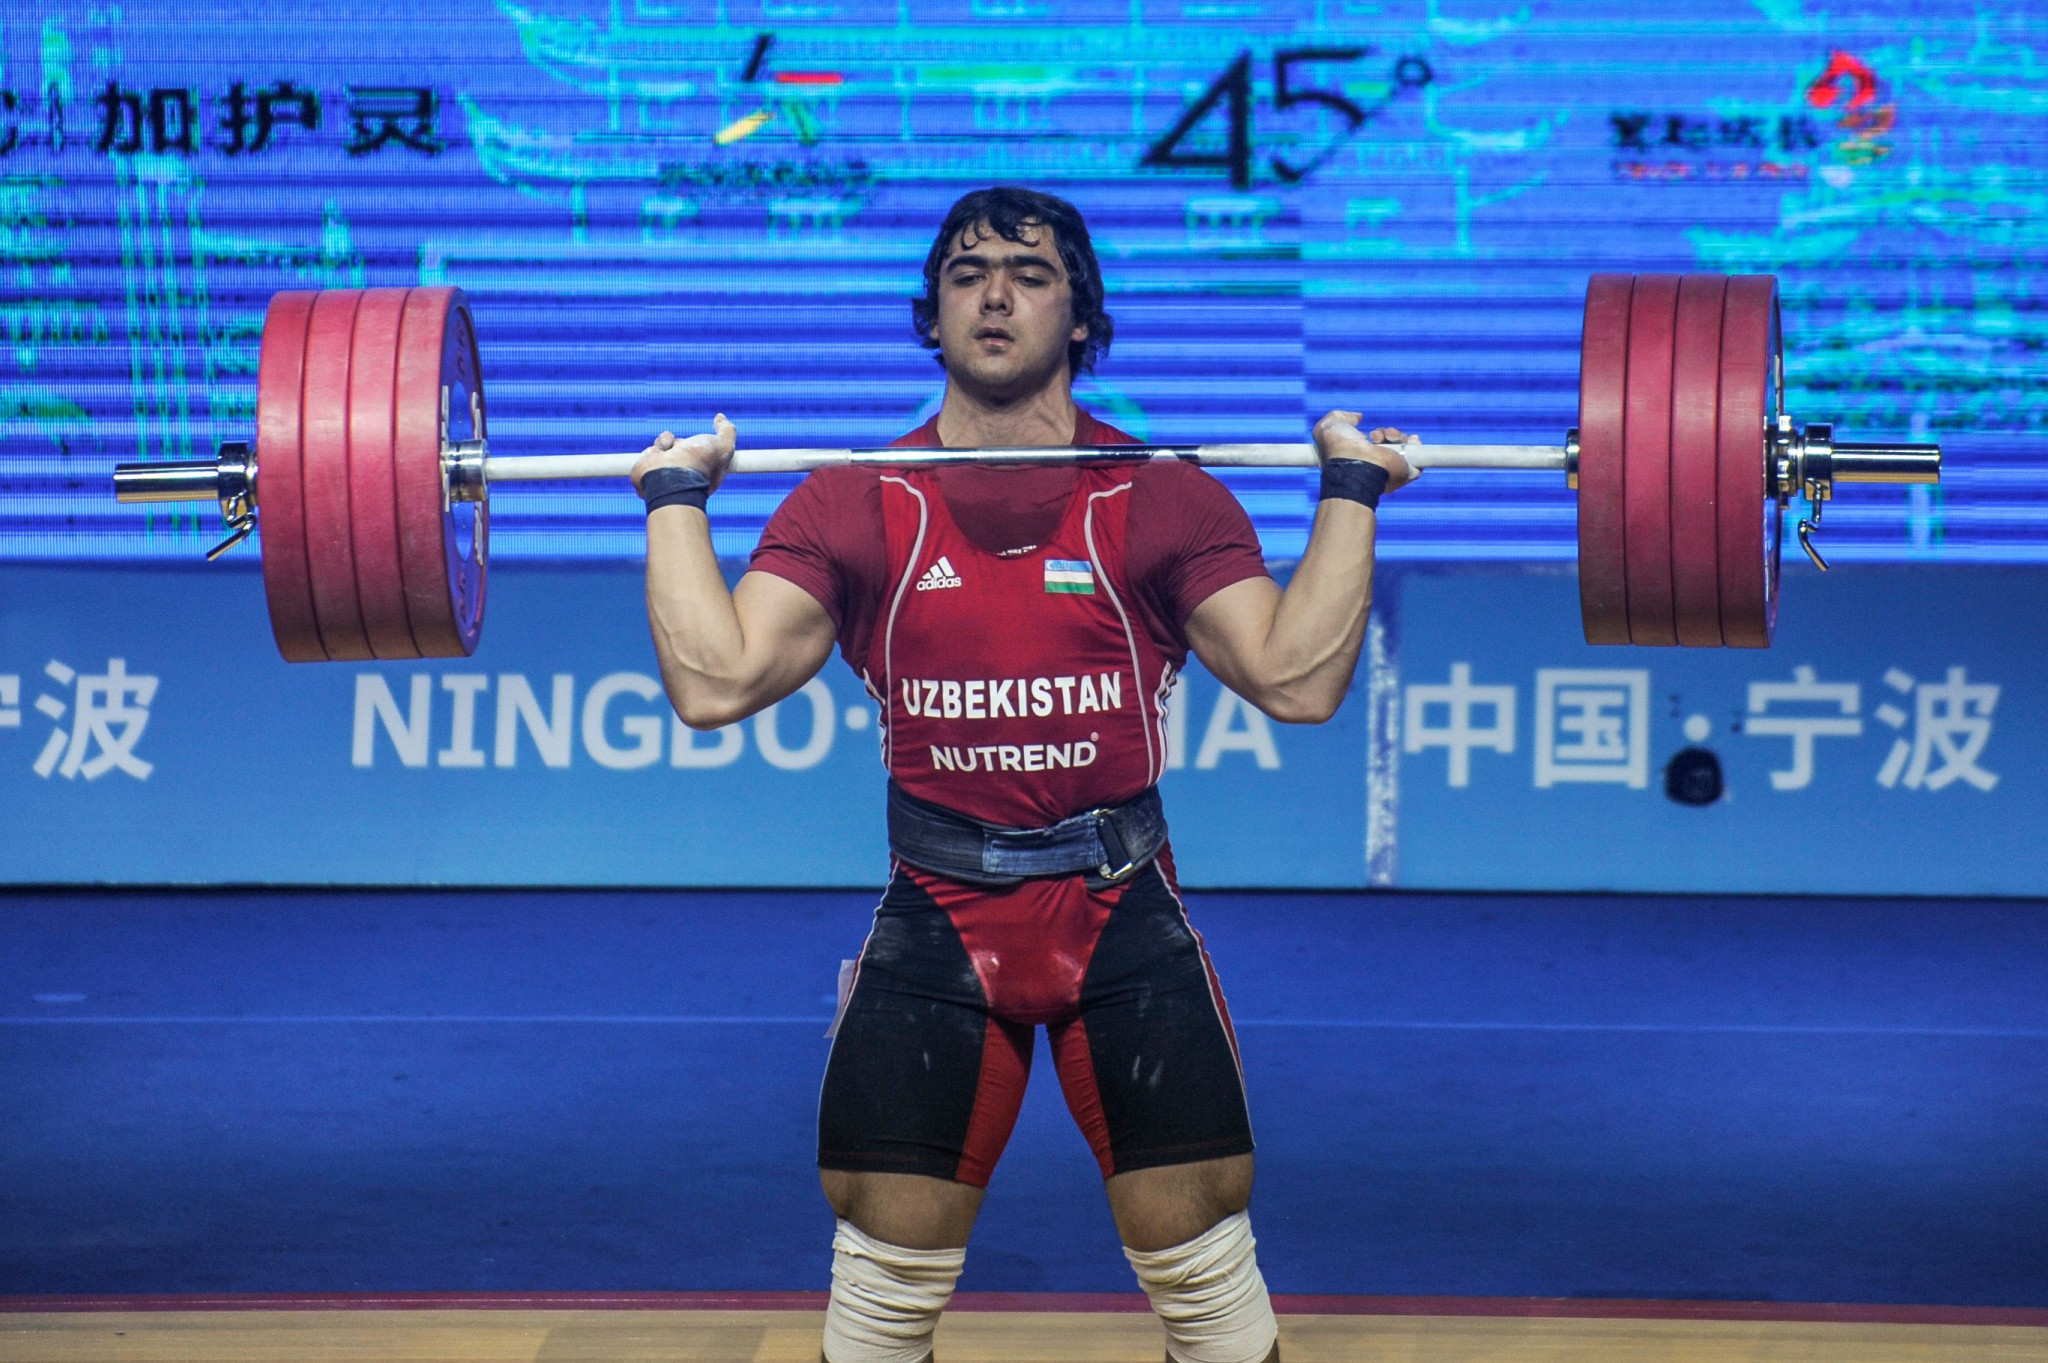 Akbar Djuraev did not need to find his best form to win gold but was still impressive ©Getty Images